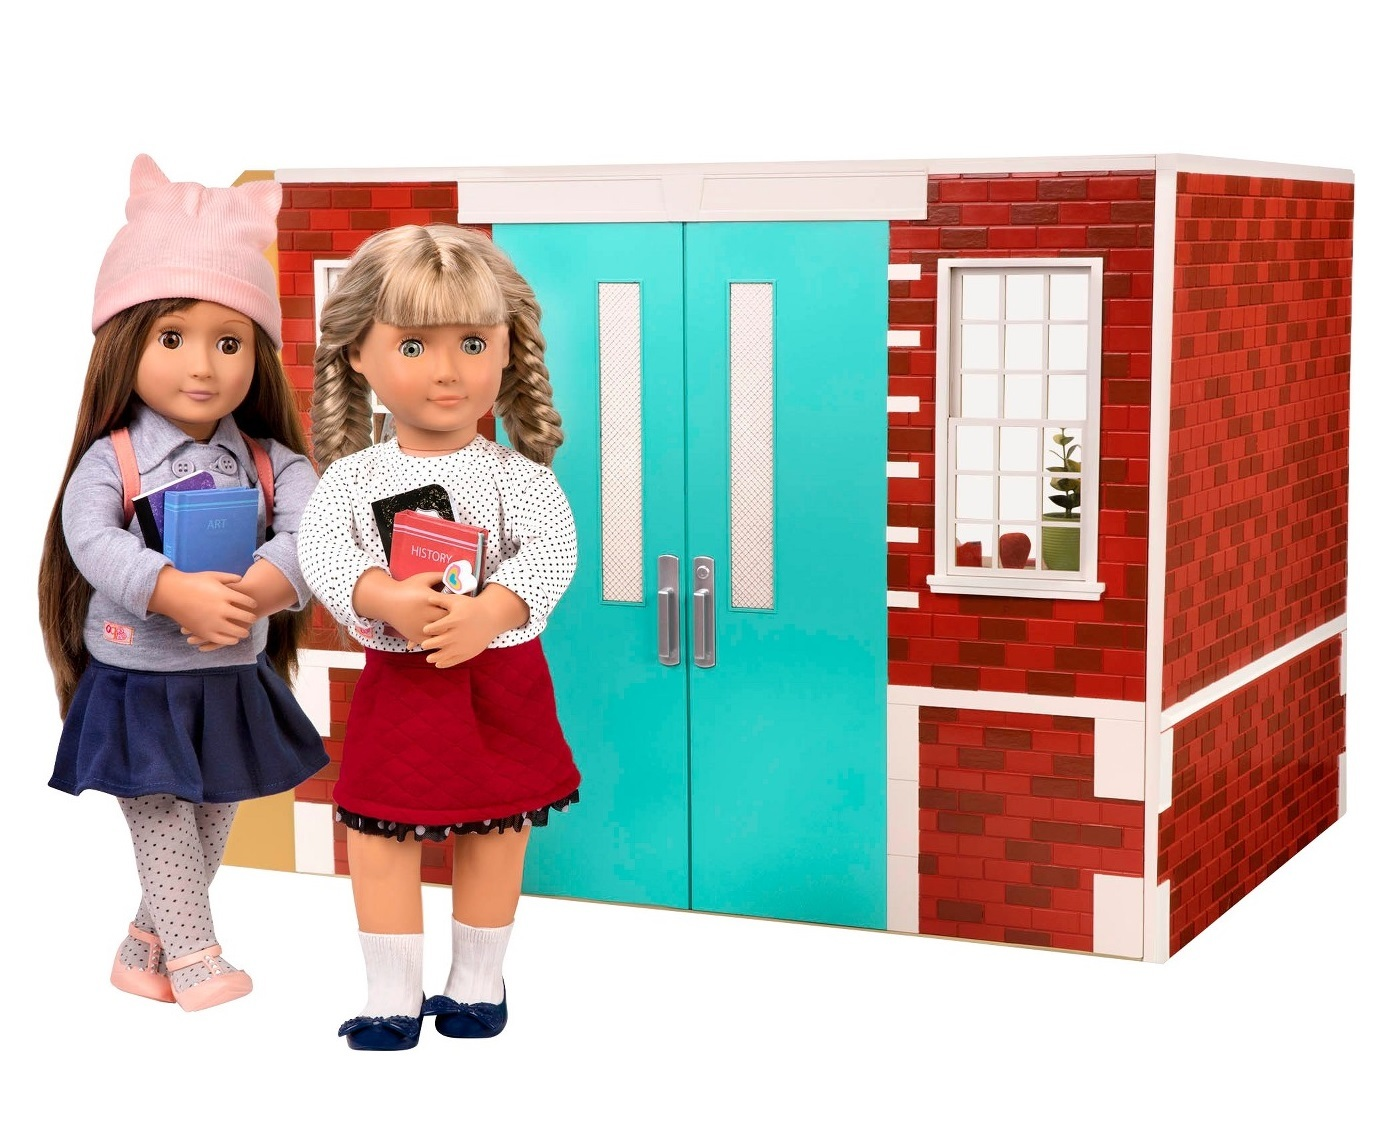 Our Generation: Deluxe Playset - School Room image